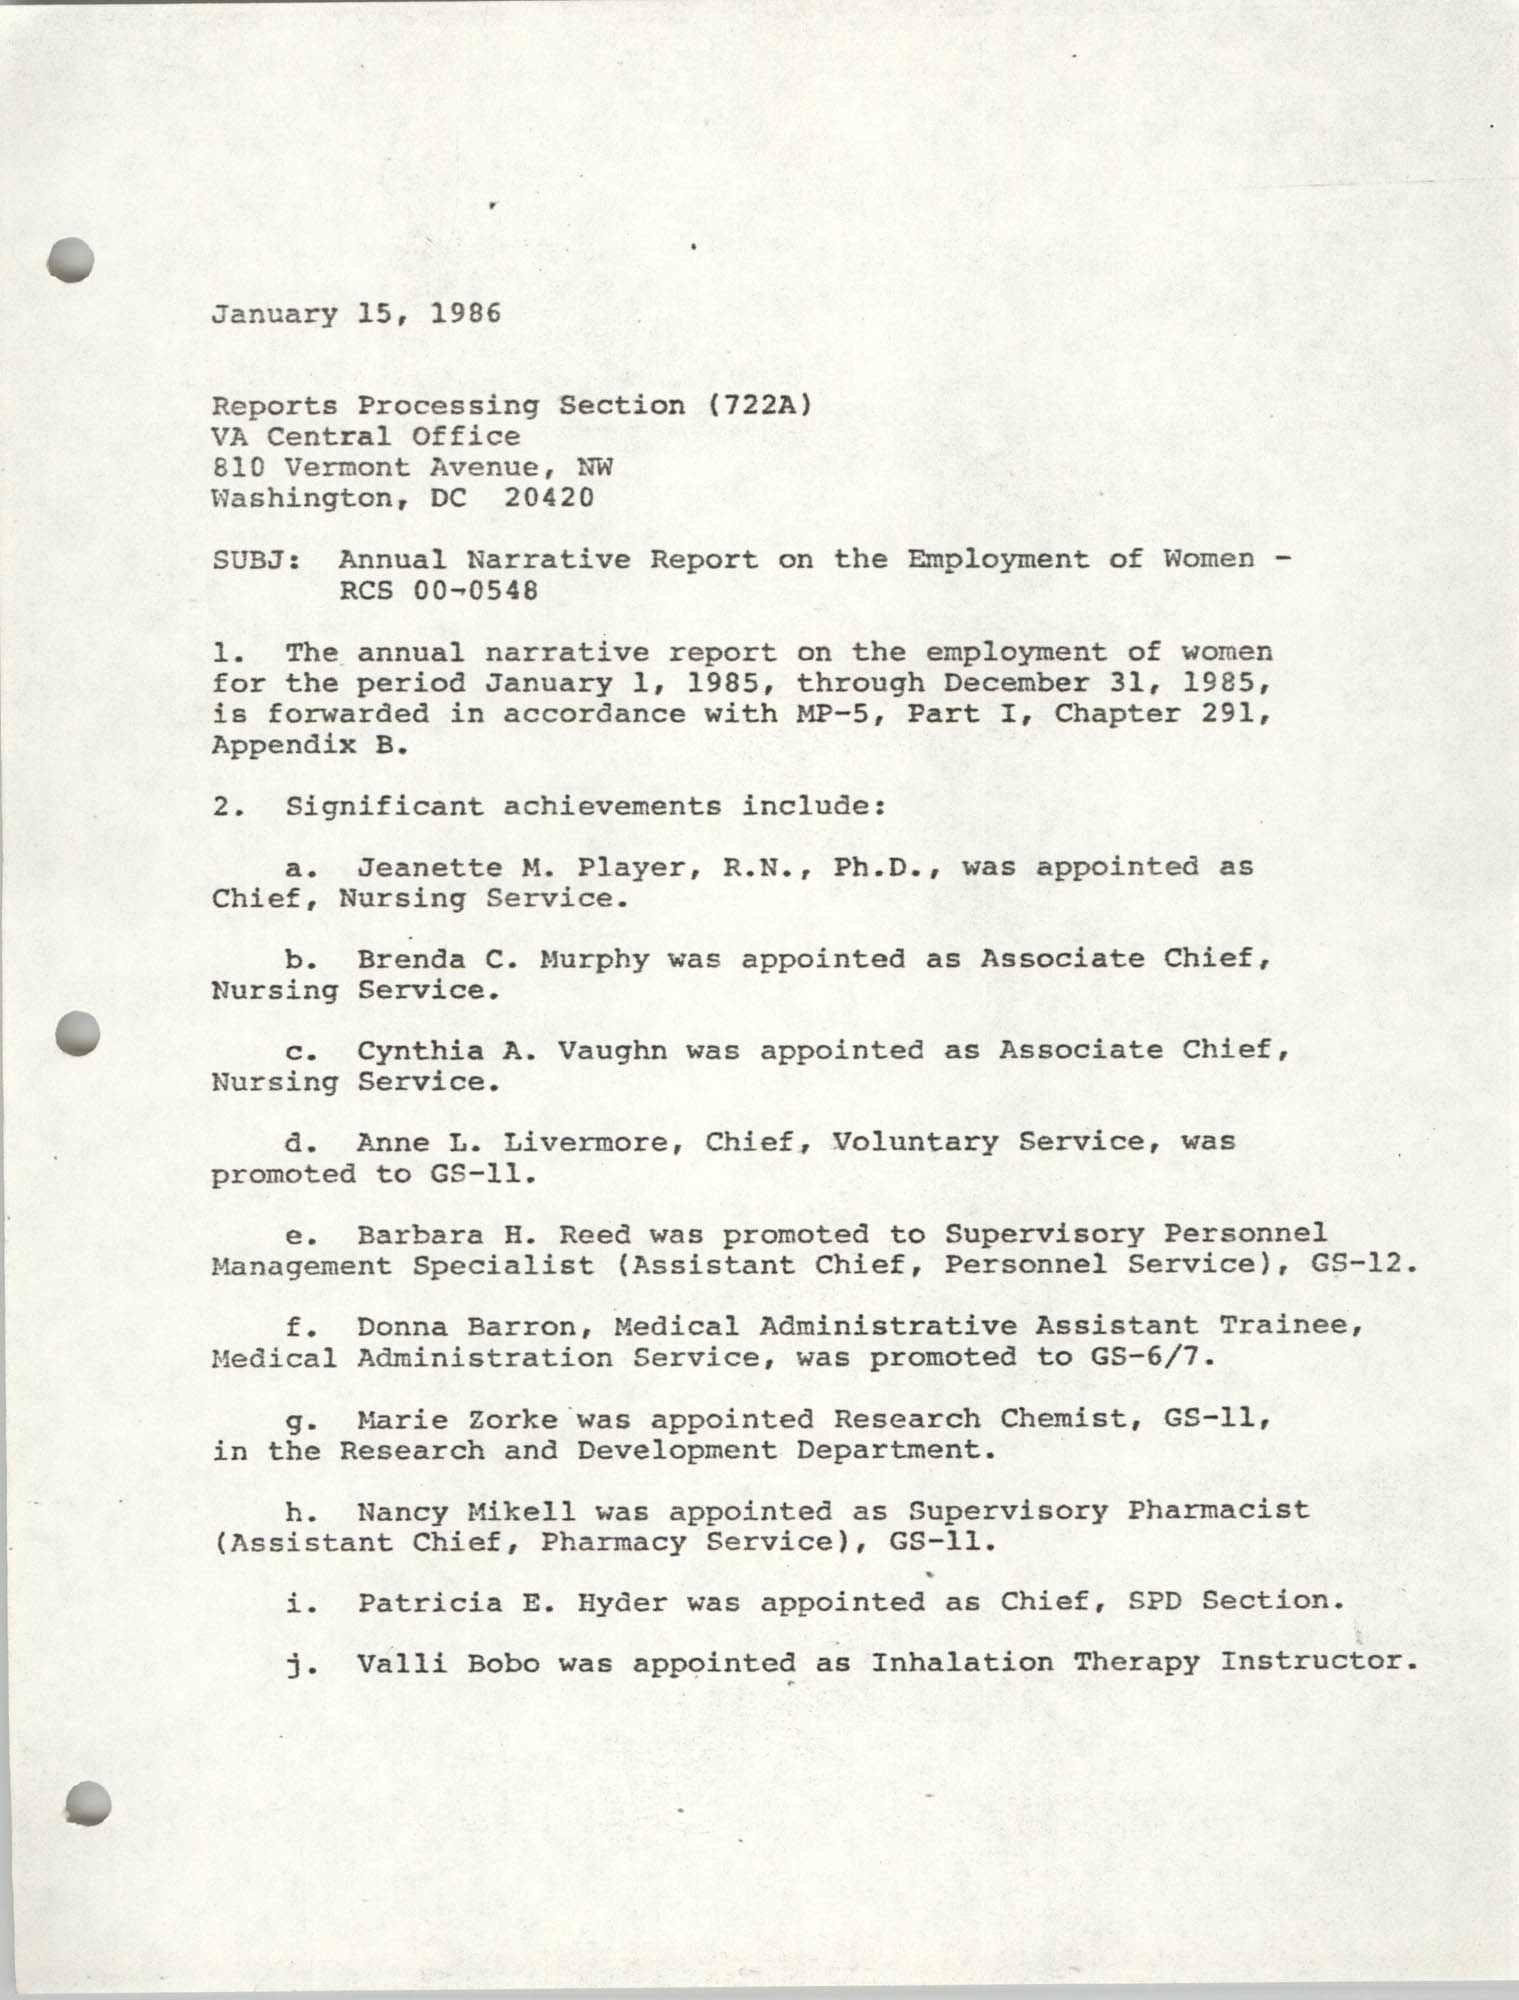 Annual Narrative Report on the Employment of Women, Veterans Administration, January 15, 1986